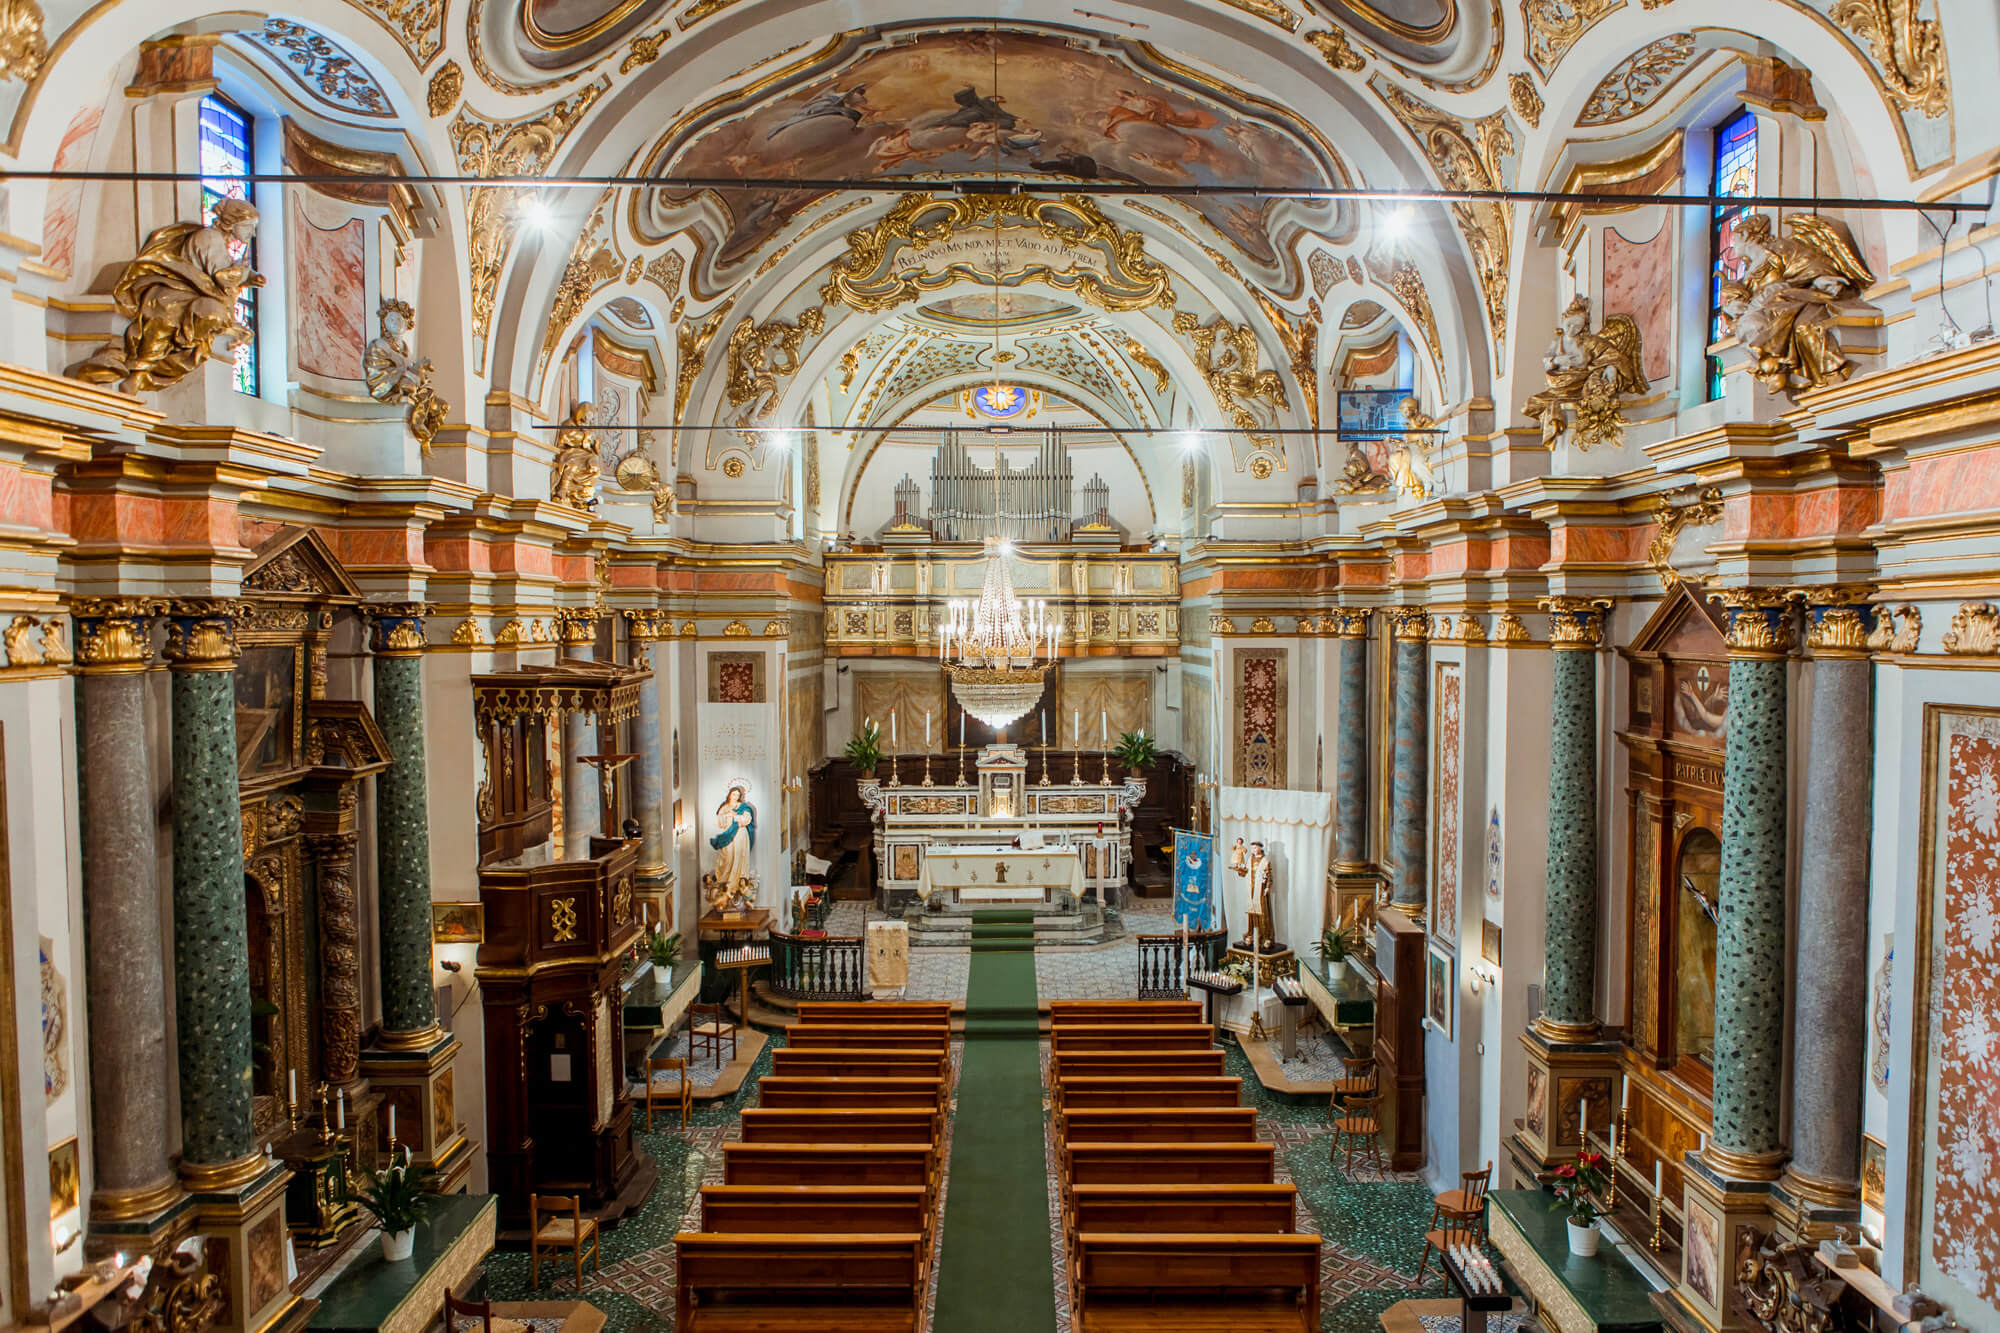 Chiese_Scanno-6